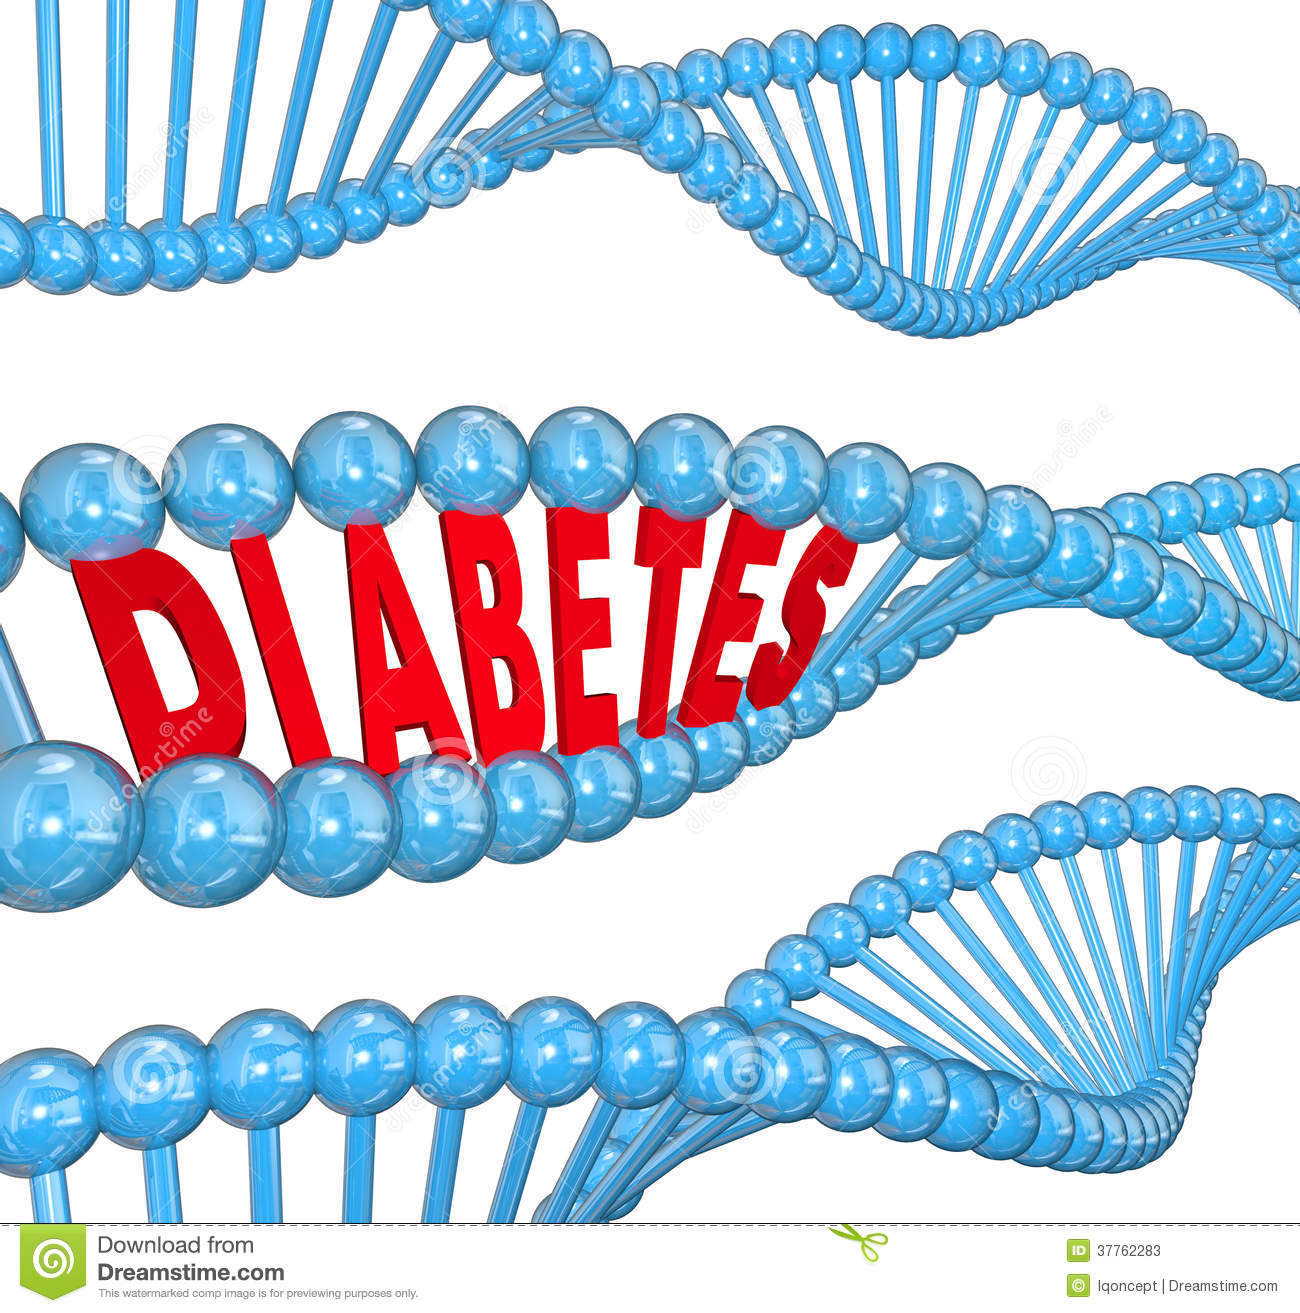 Can diabetes be a hereditary illness